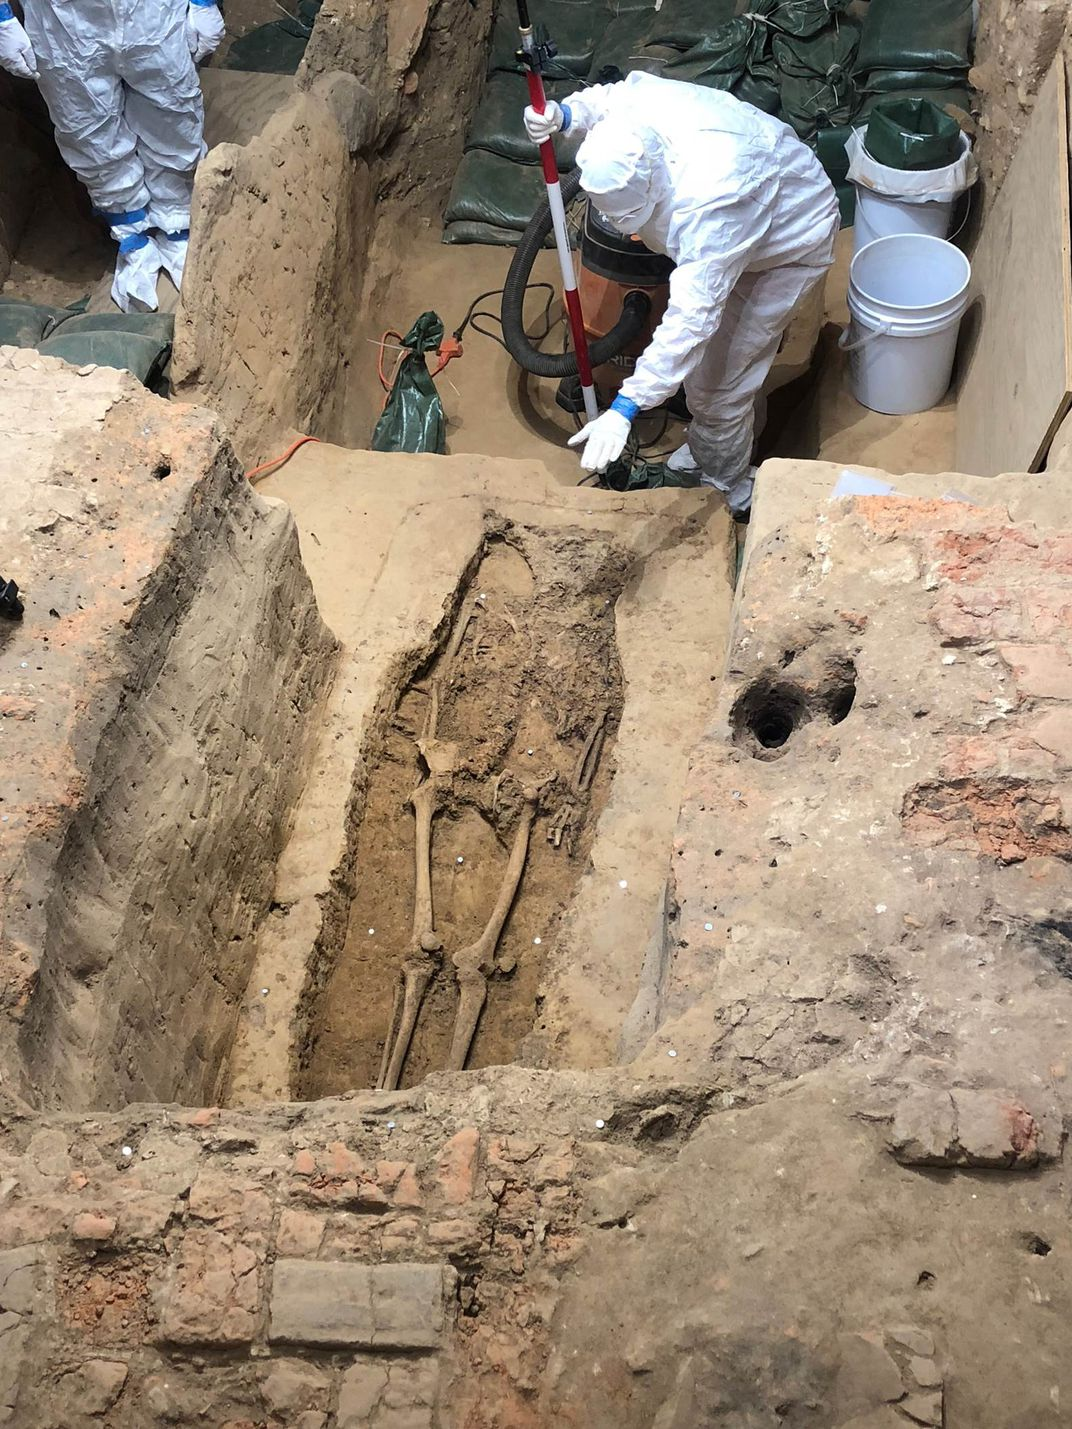 A Jamestown Skeleton is Unearthed, but Only Time—and Science